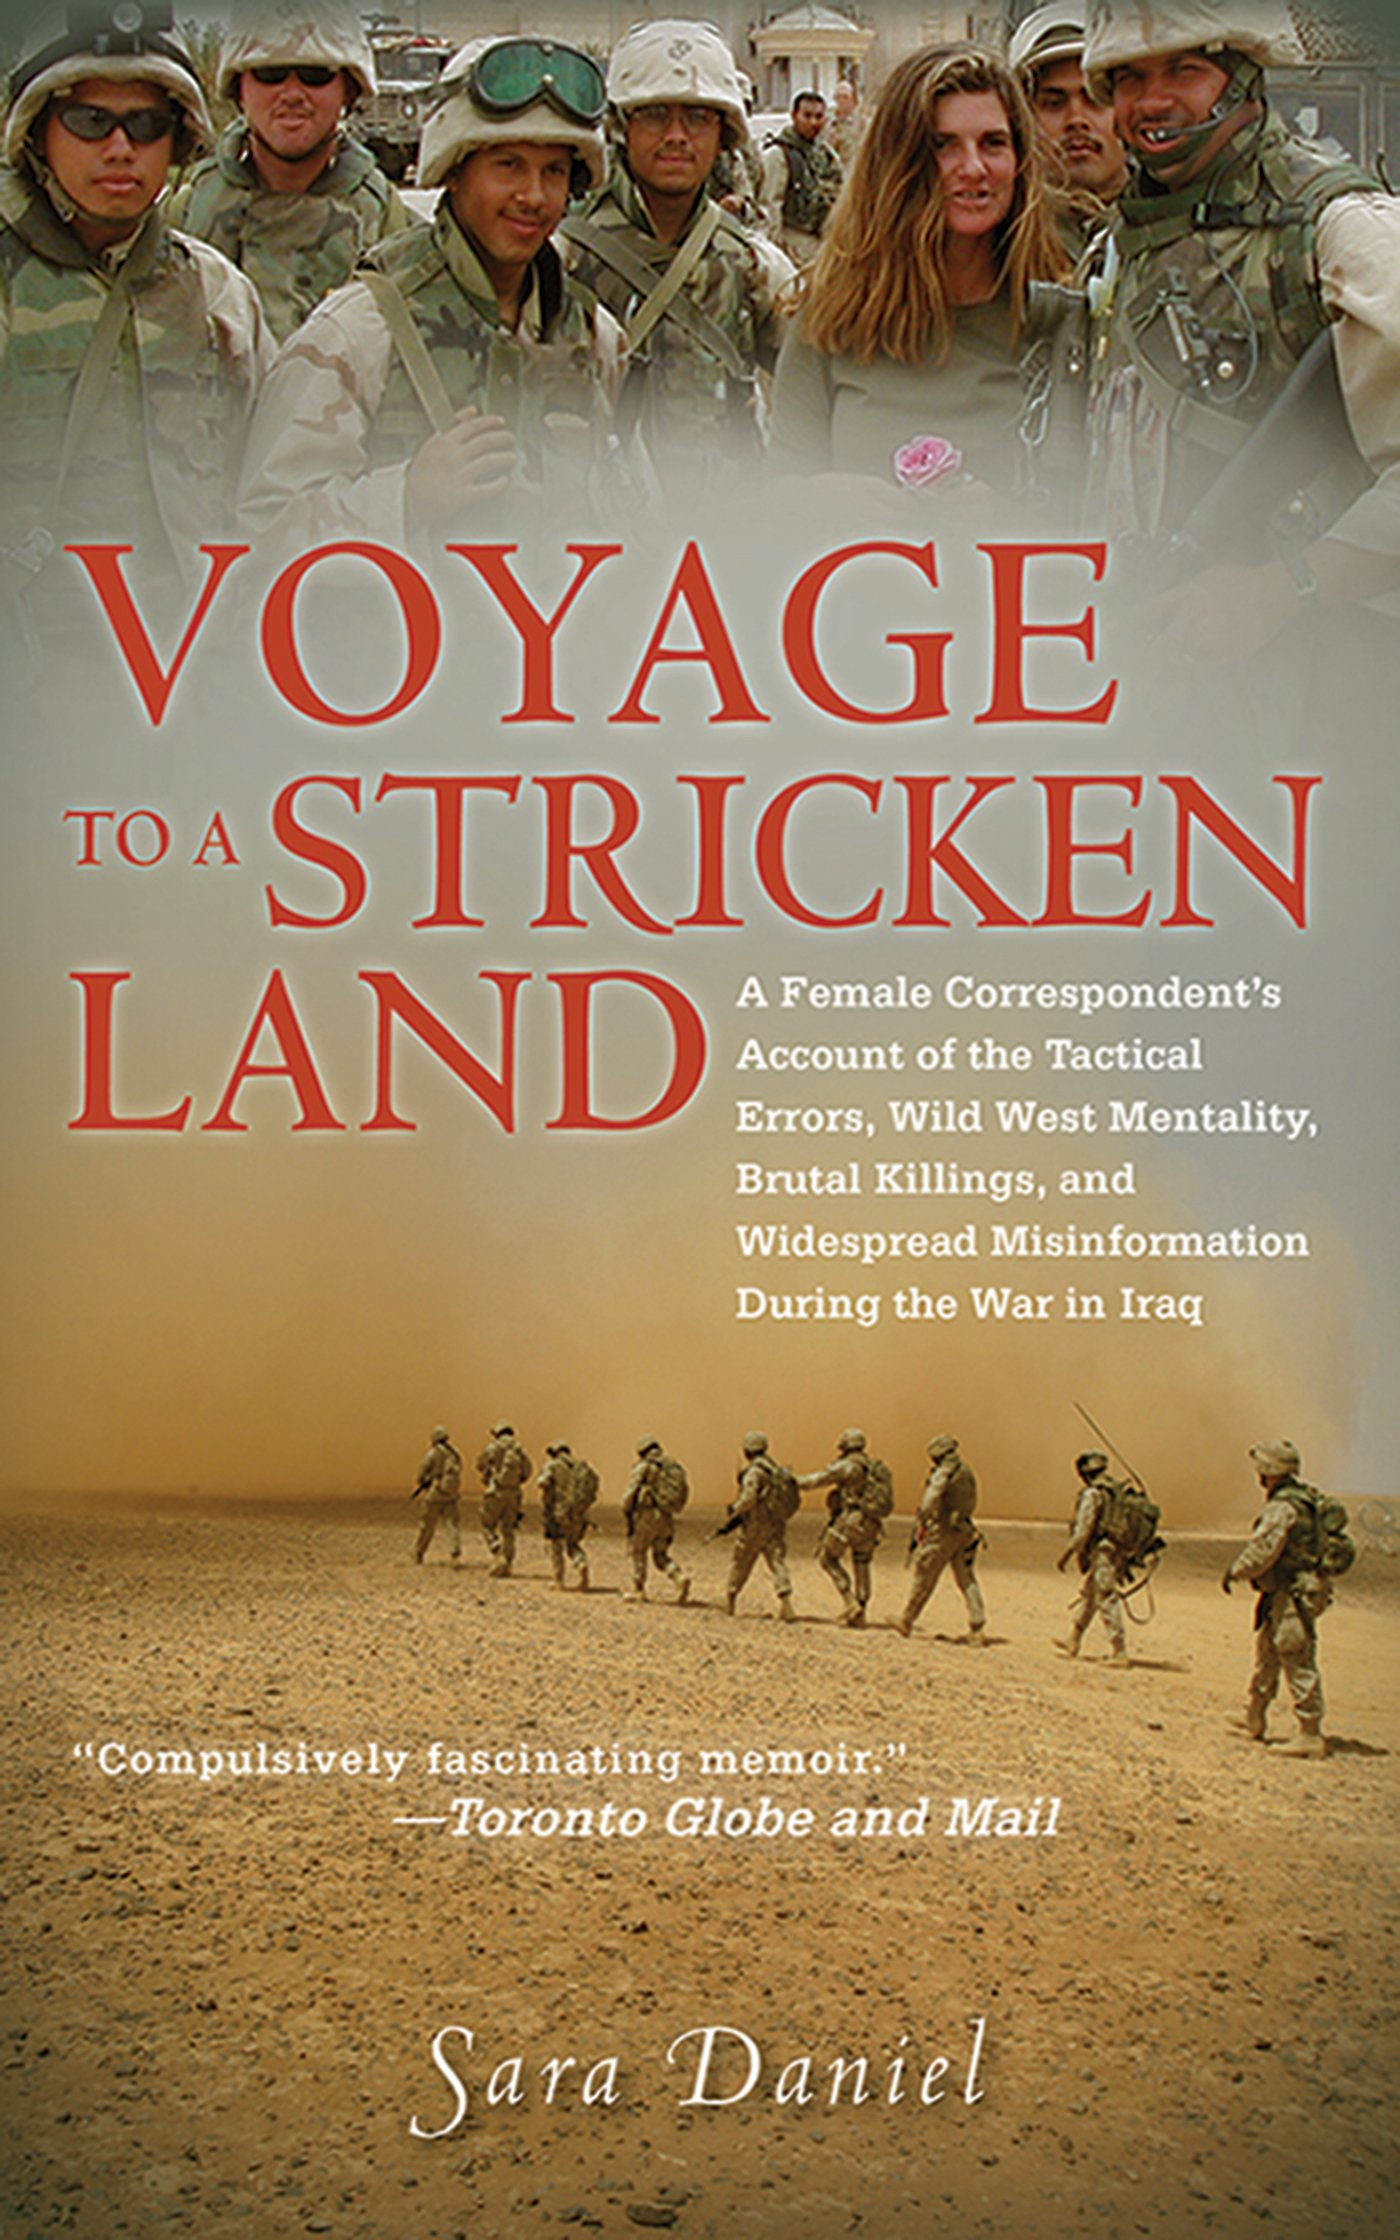 Voyage to a Stricken Land: A Woman Reporter's Battlefield Reporting on the War in Iraq by Arcade Publishing